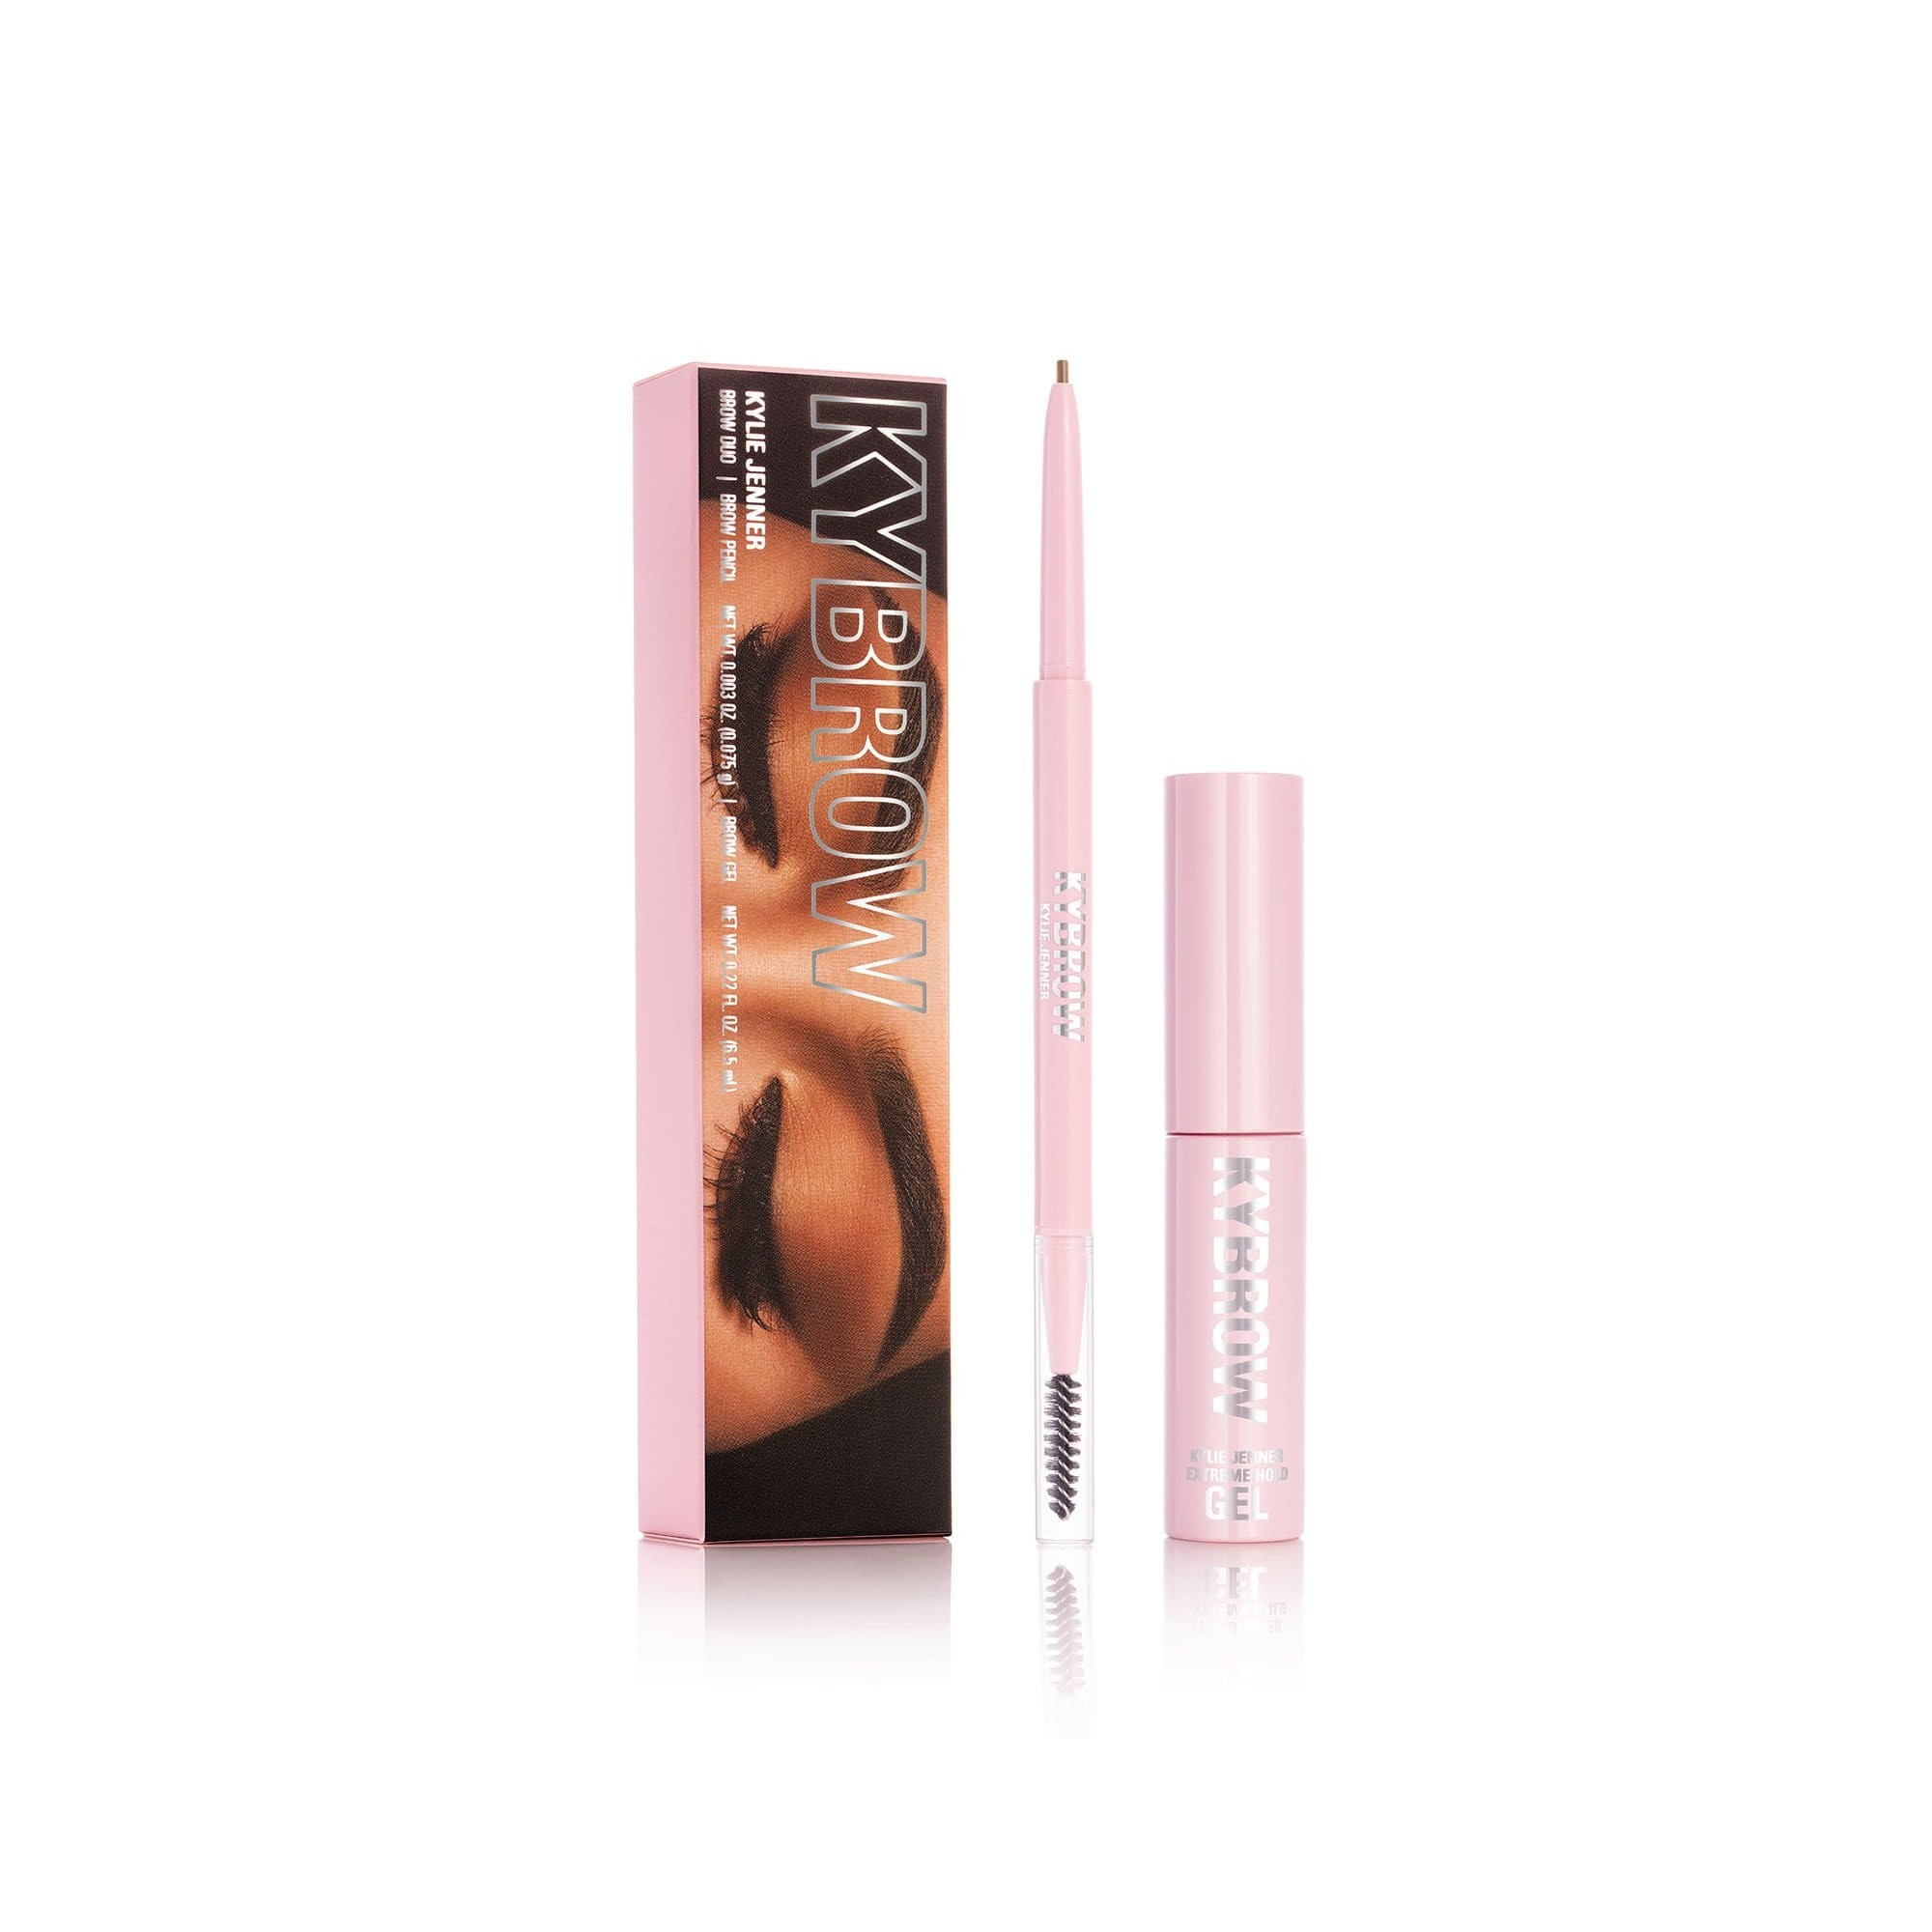 Kylie Cosmetics Brow Duo Kit Kybrow Cool Brown